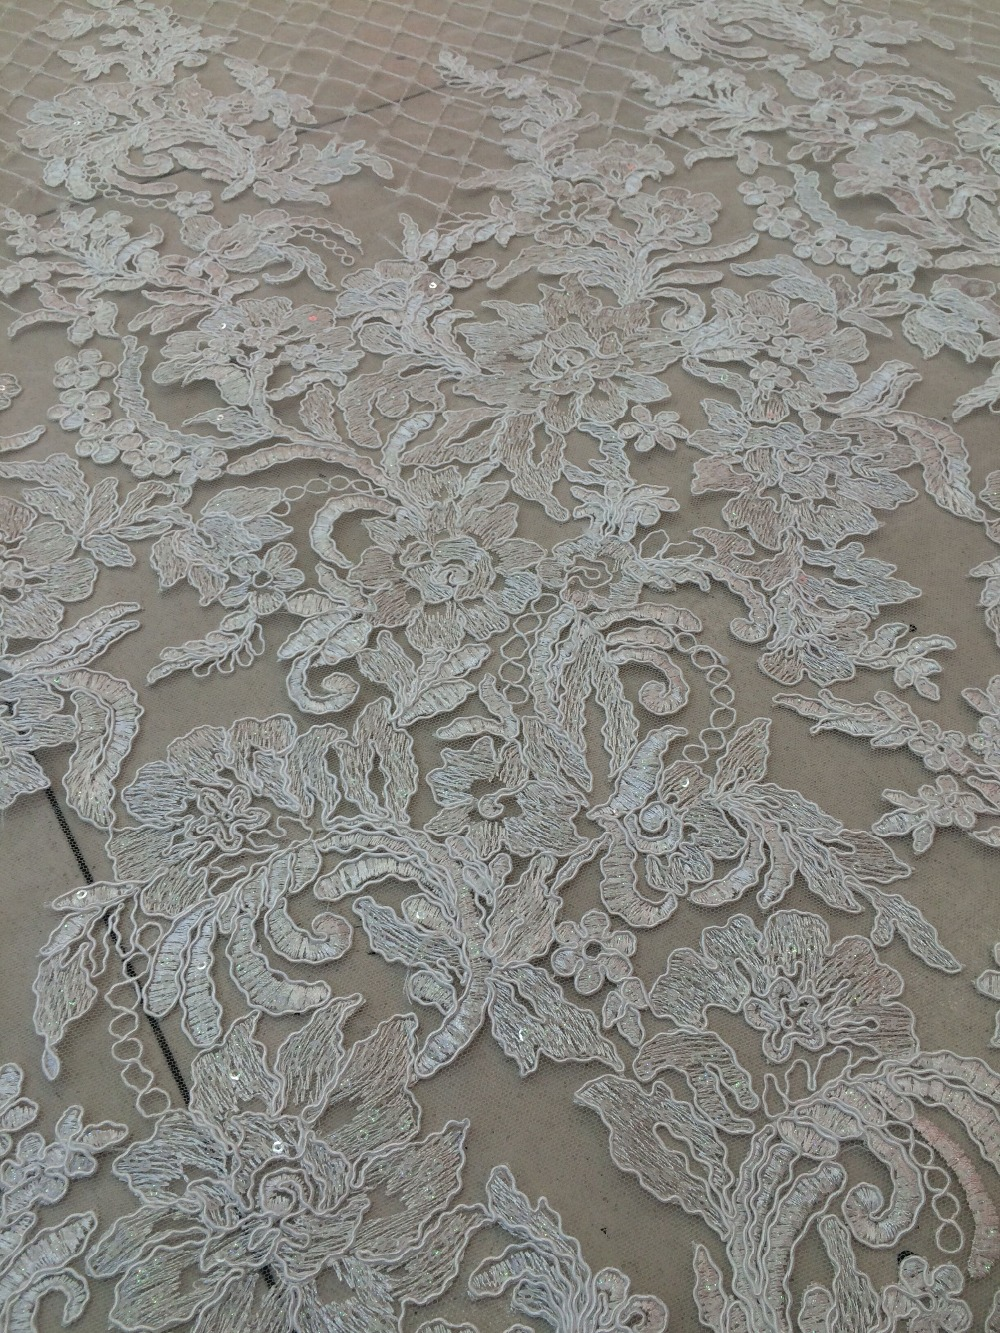 African Z han101925 Tulle Lace Design High Quality net lace fabric with sequins Embroidery Polyester French